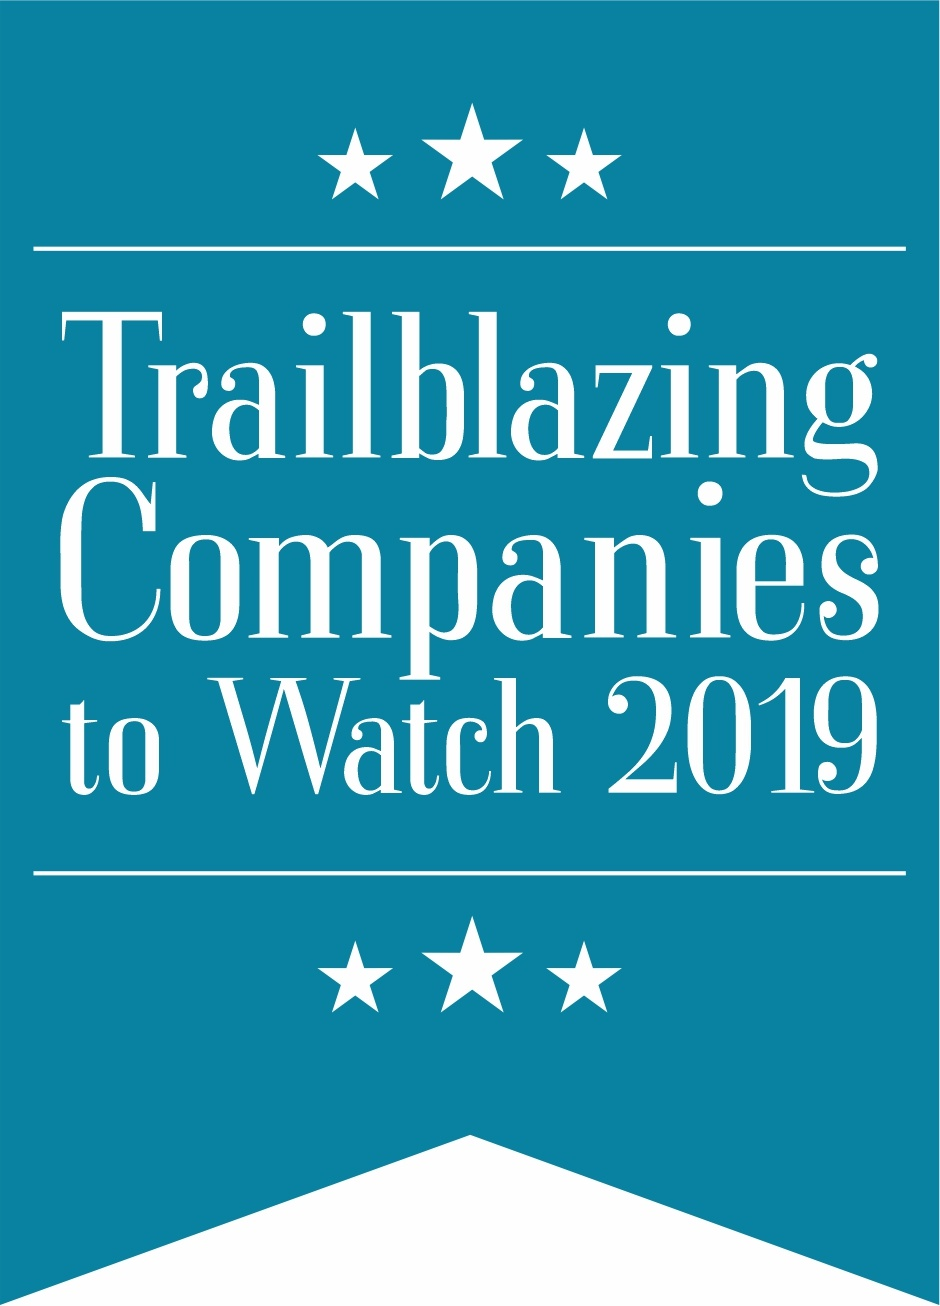 The Enterprise World releases The Trailblazing Companies to Watch 2019